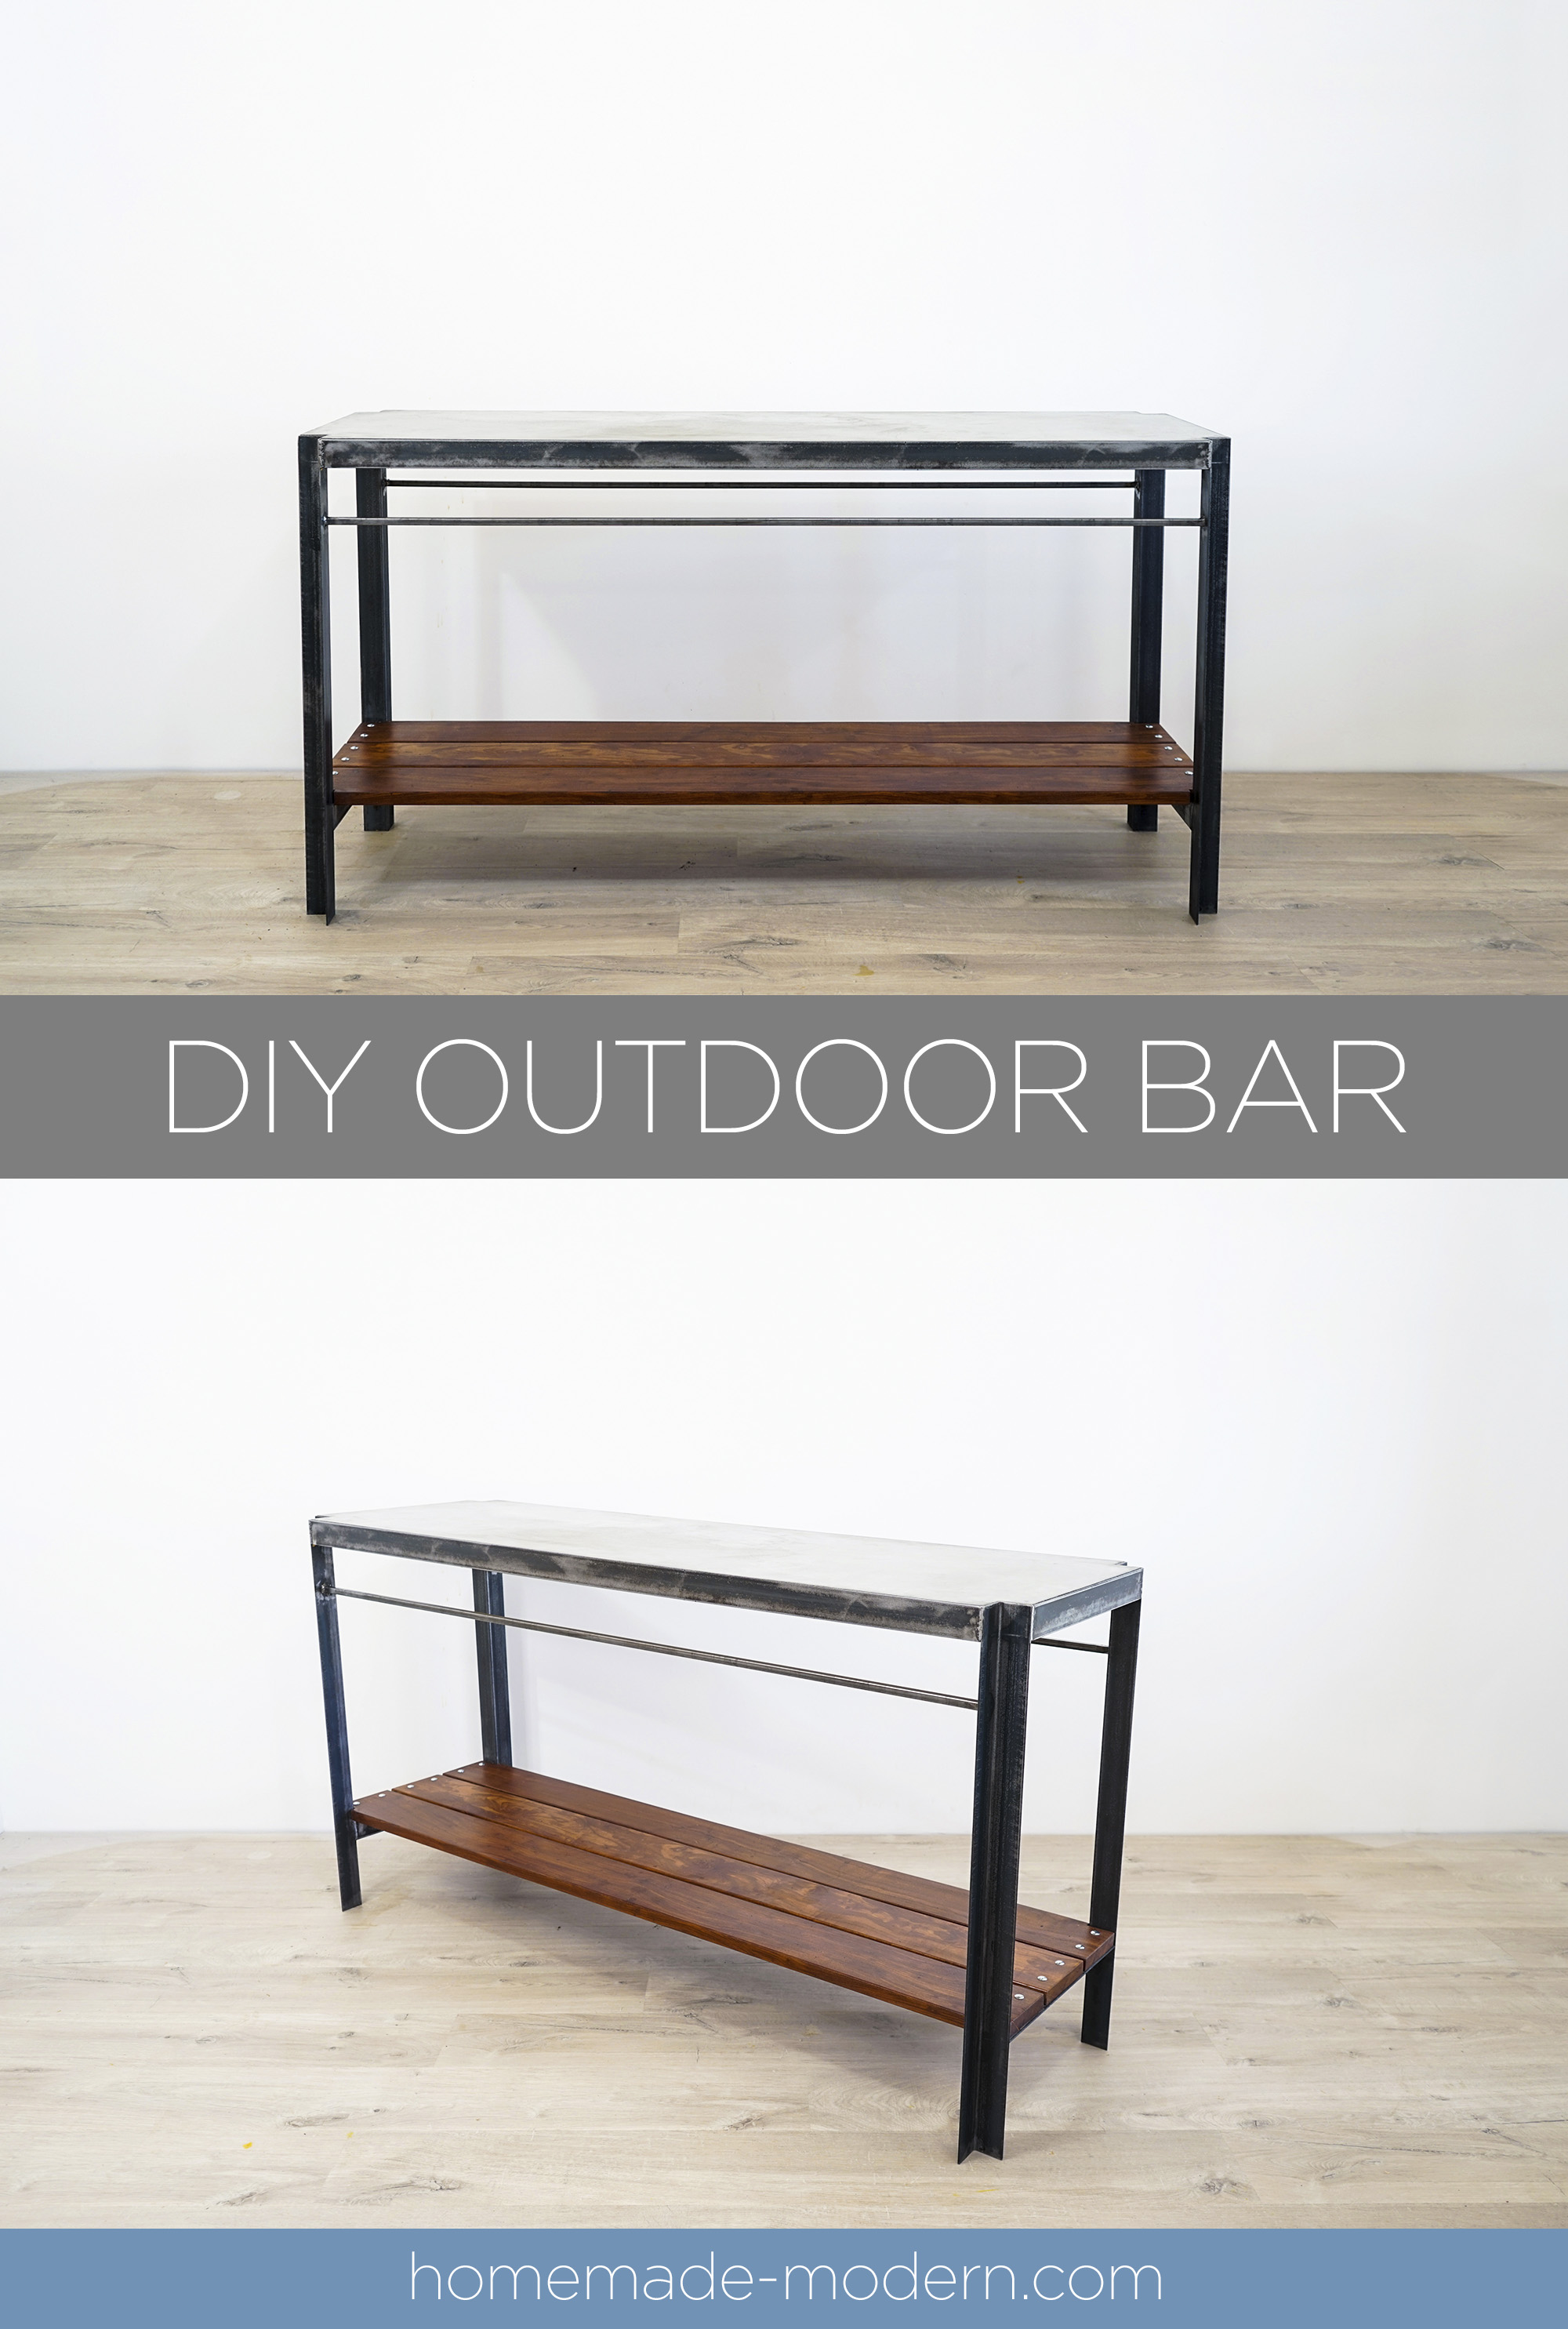 This DIY Outdoor Bar features a poured in place concrete countertop and wood shelves made out of Cumaru. For more information go to HomeMade-Modern.com